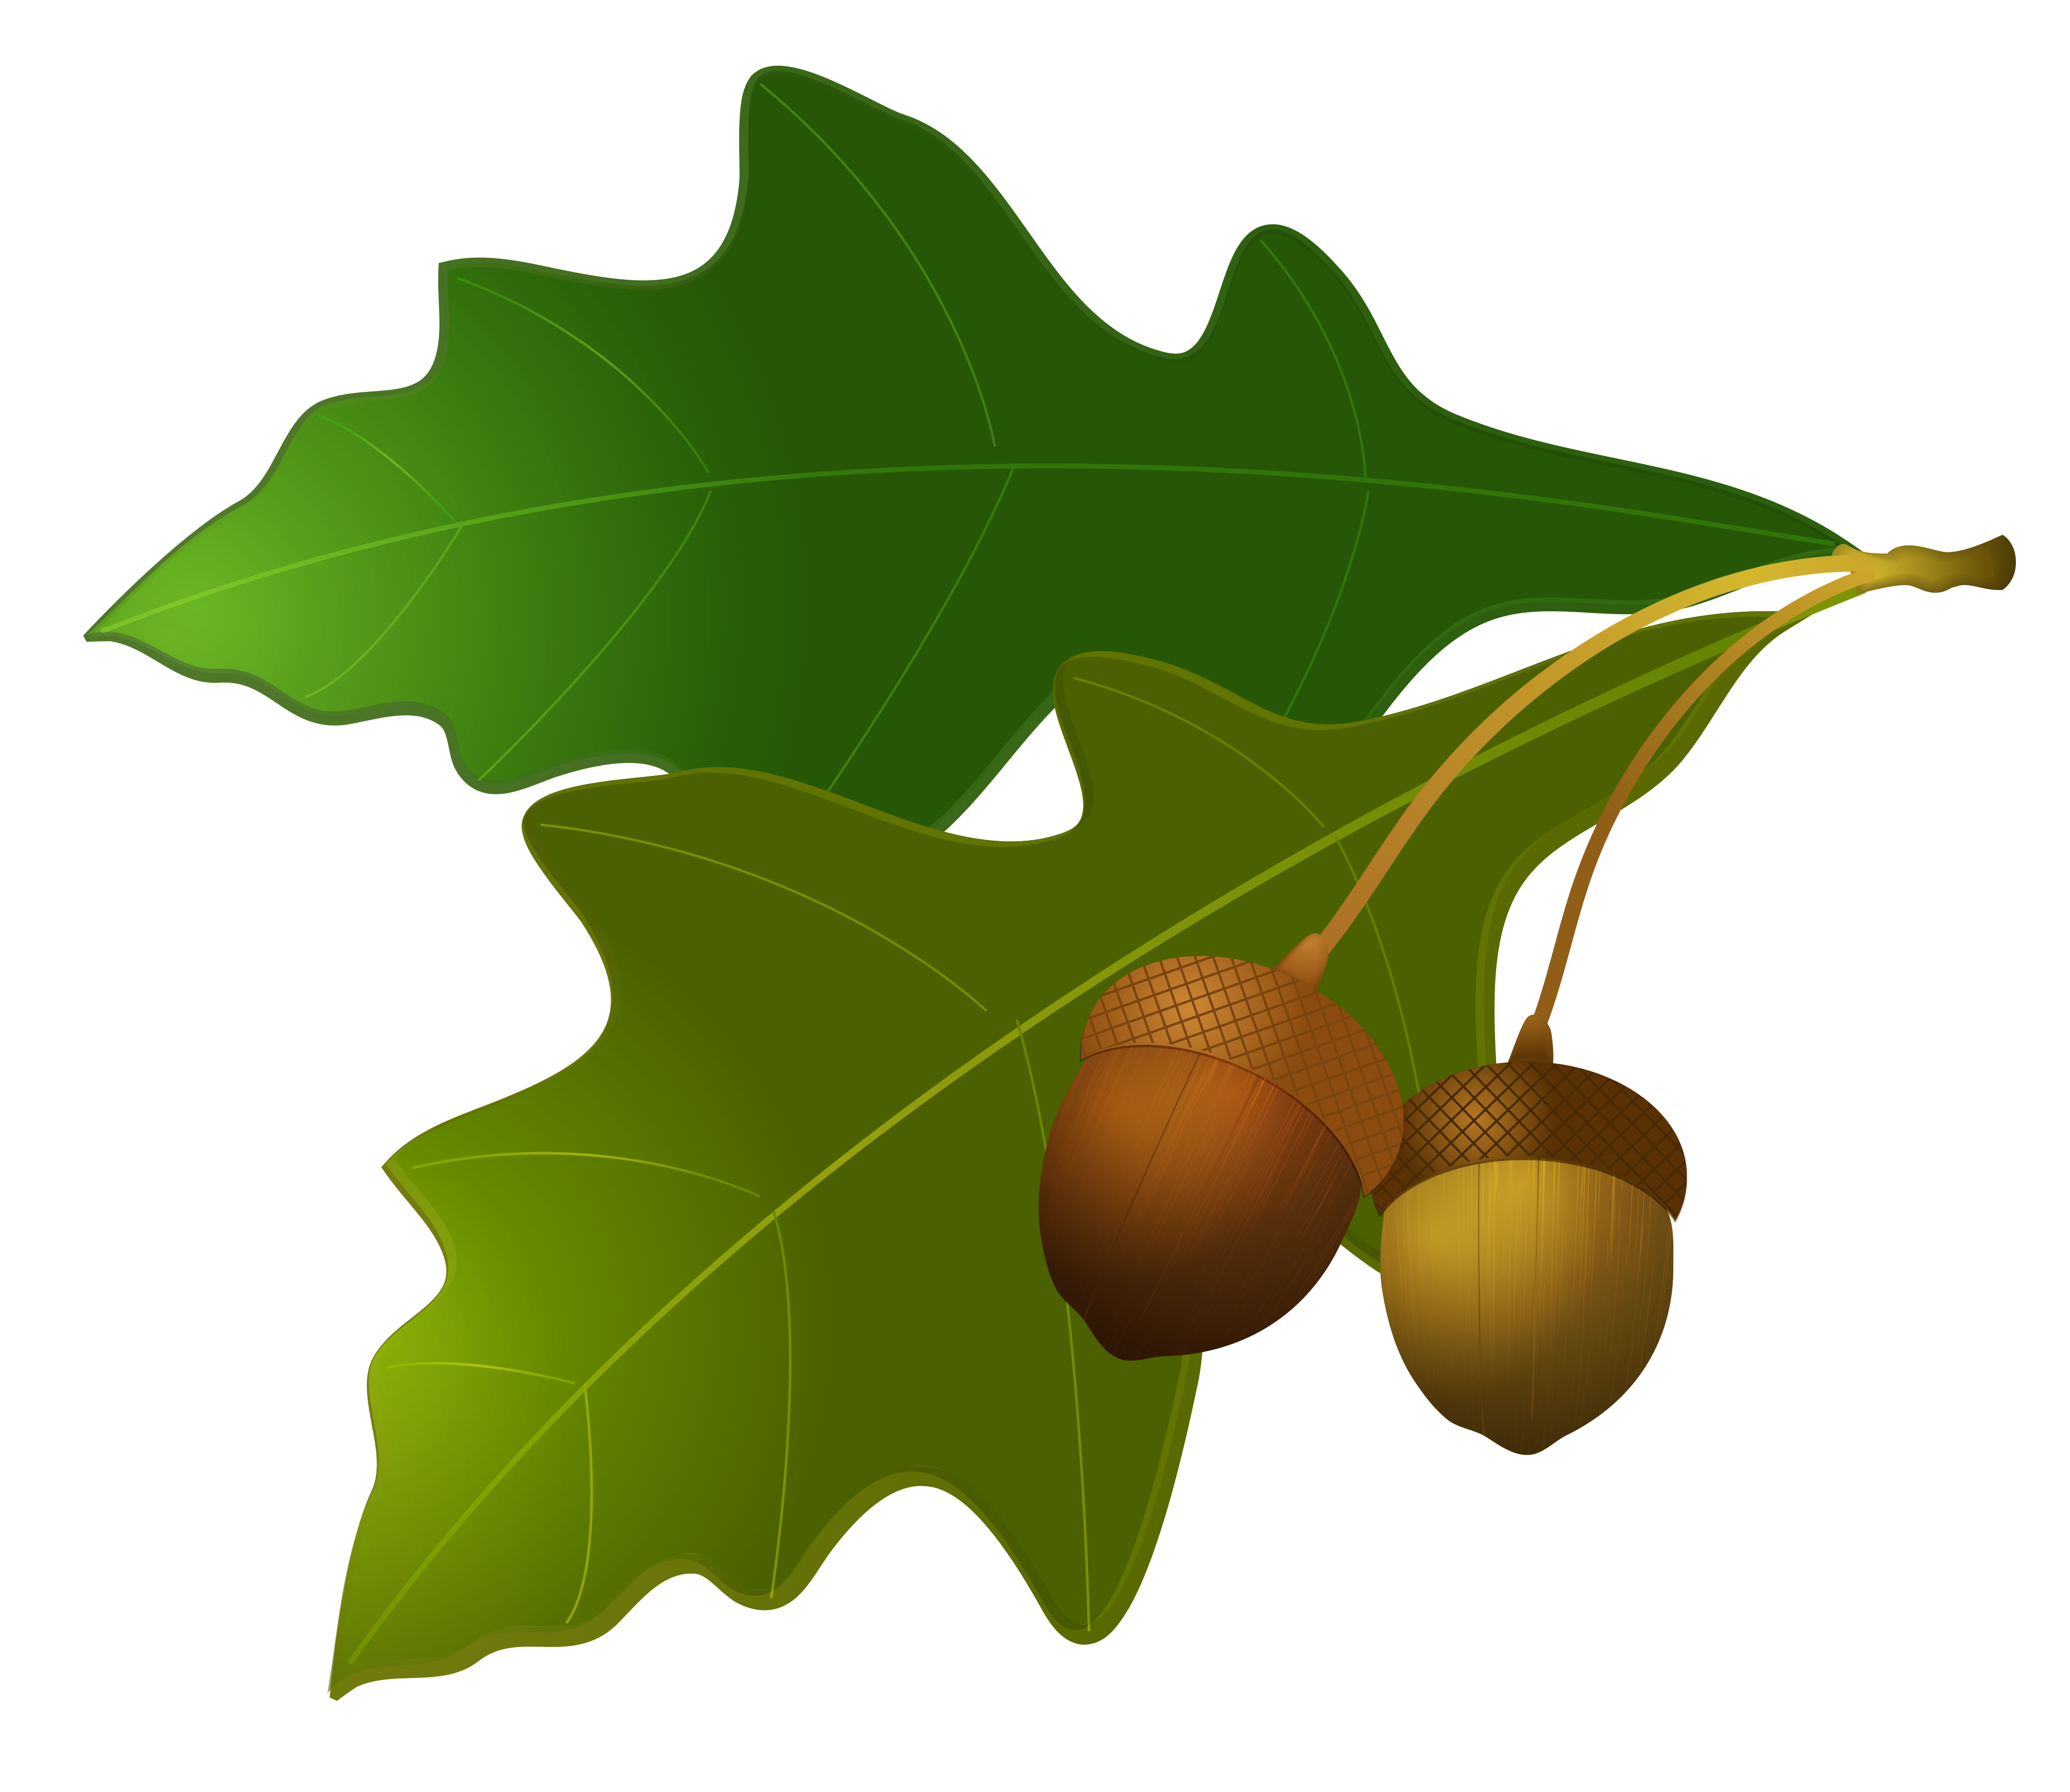 Png imge free picture. Harvest clipart acorn